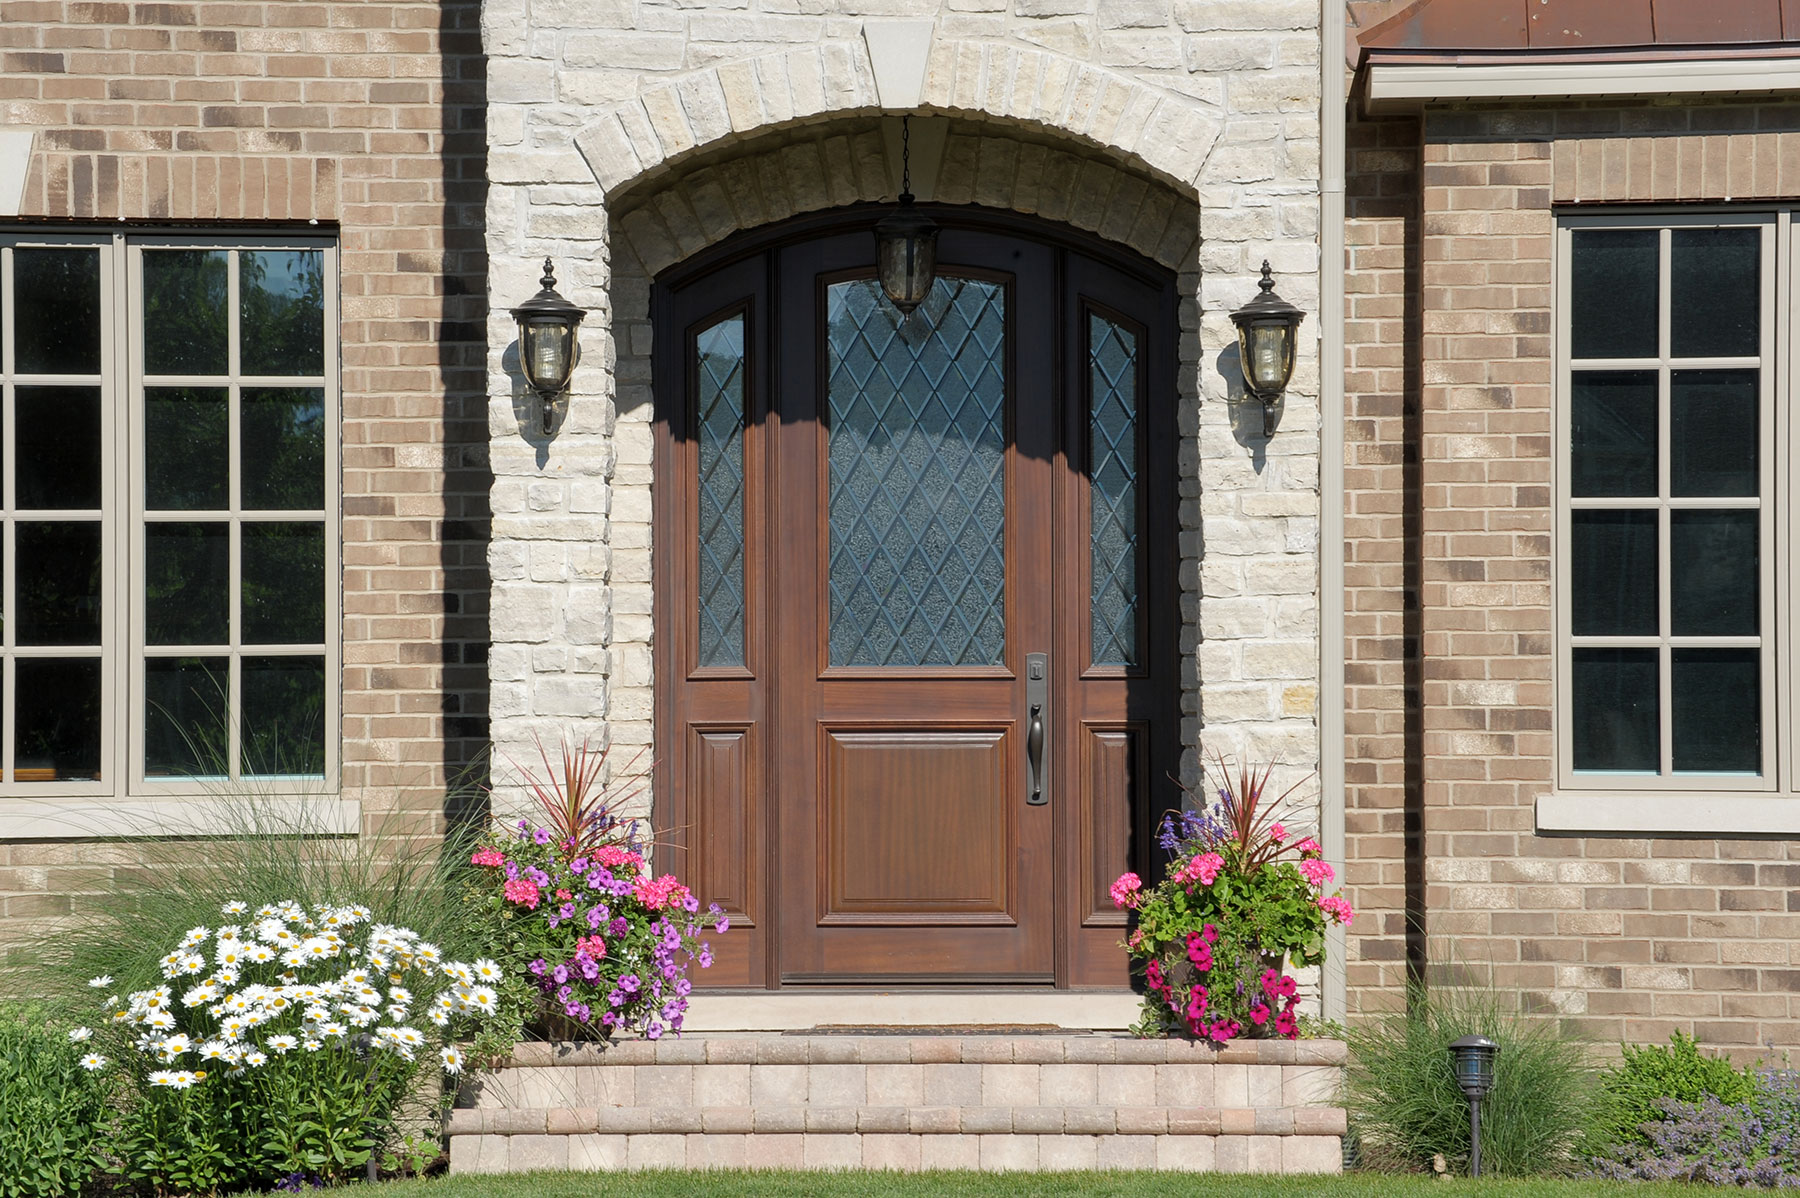 Solid Wood Front Entry Doors in-Stock | solid wood front entry door, in dark finish, for luxury home  DB-552DG 2SL - Glenview Doors - Custom Doors in Chicago